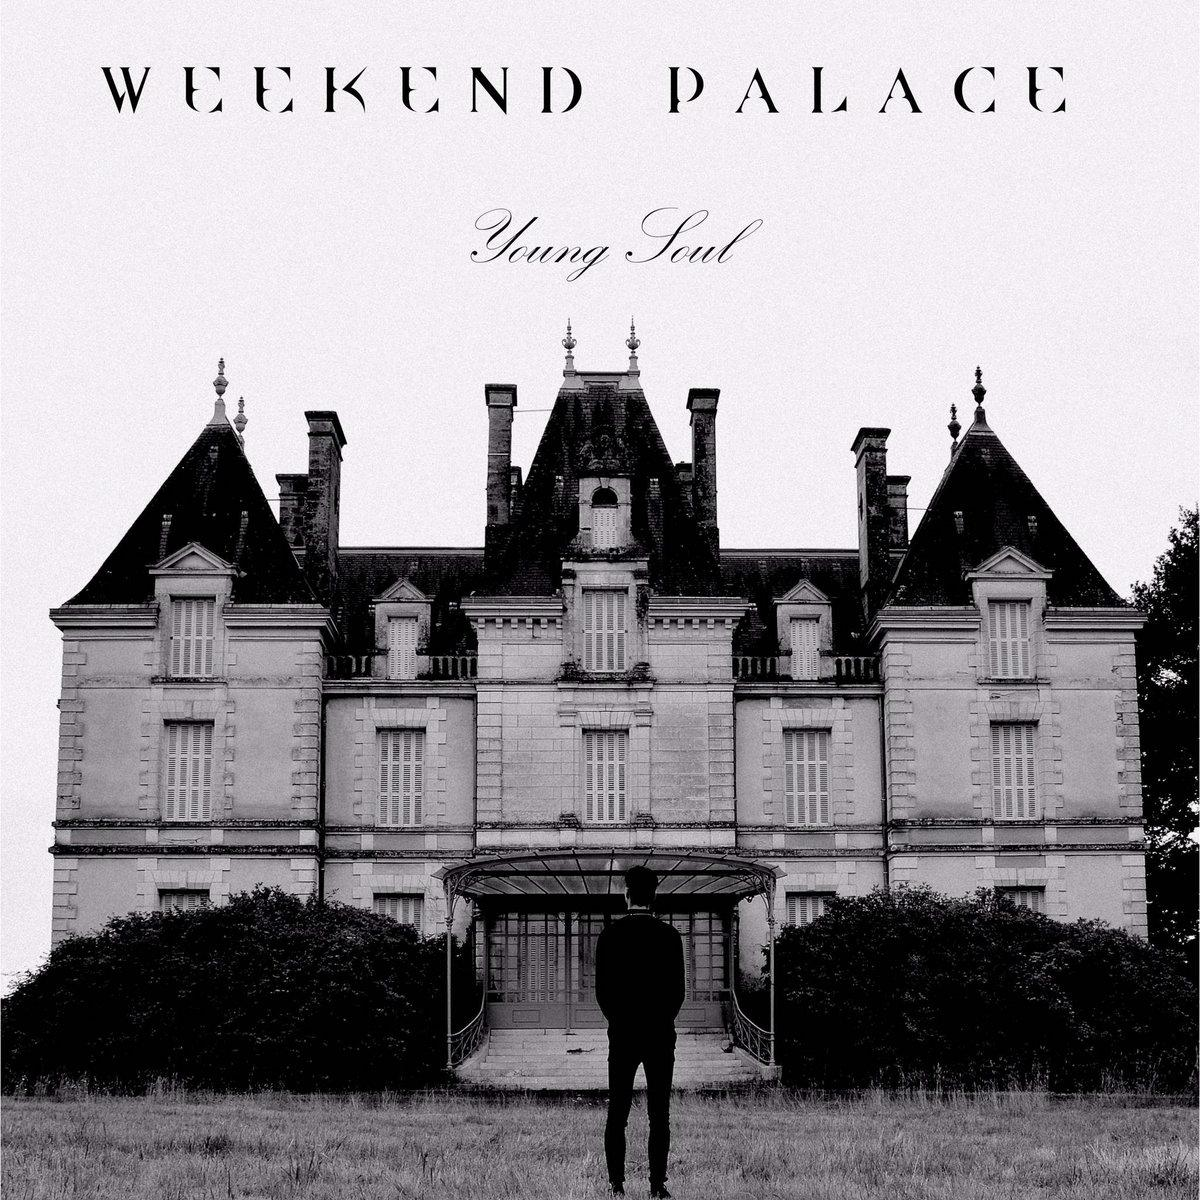 Les bio d'Apo : WEEKEND PALACE